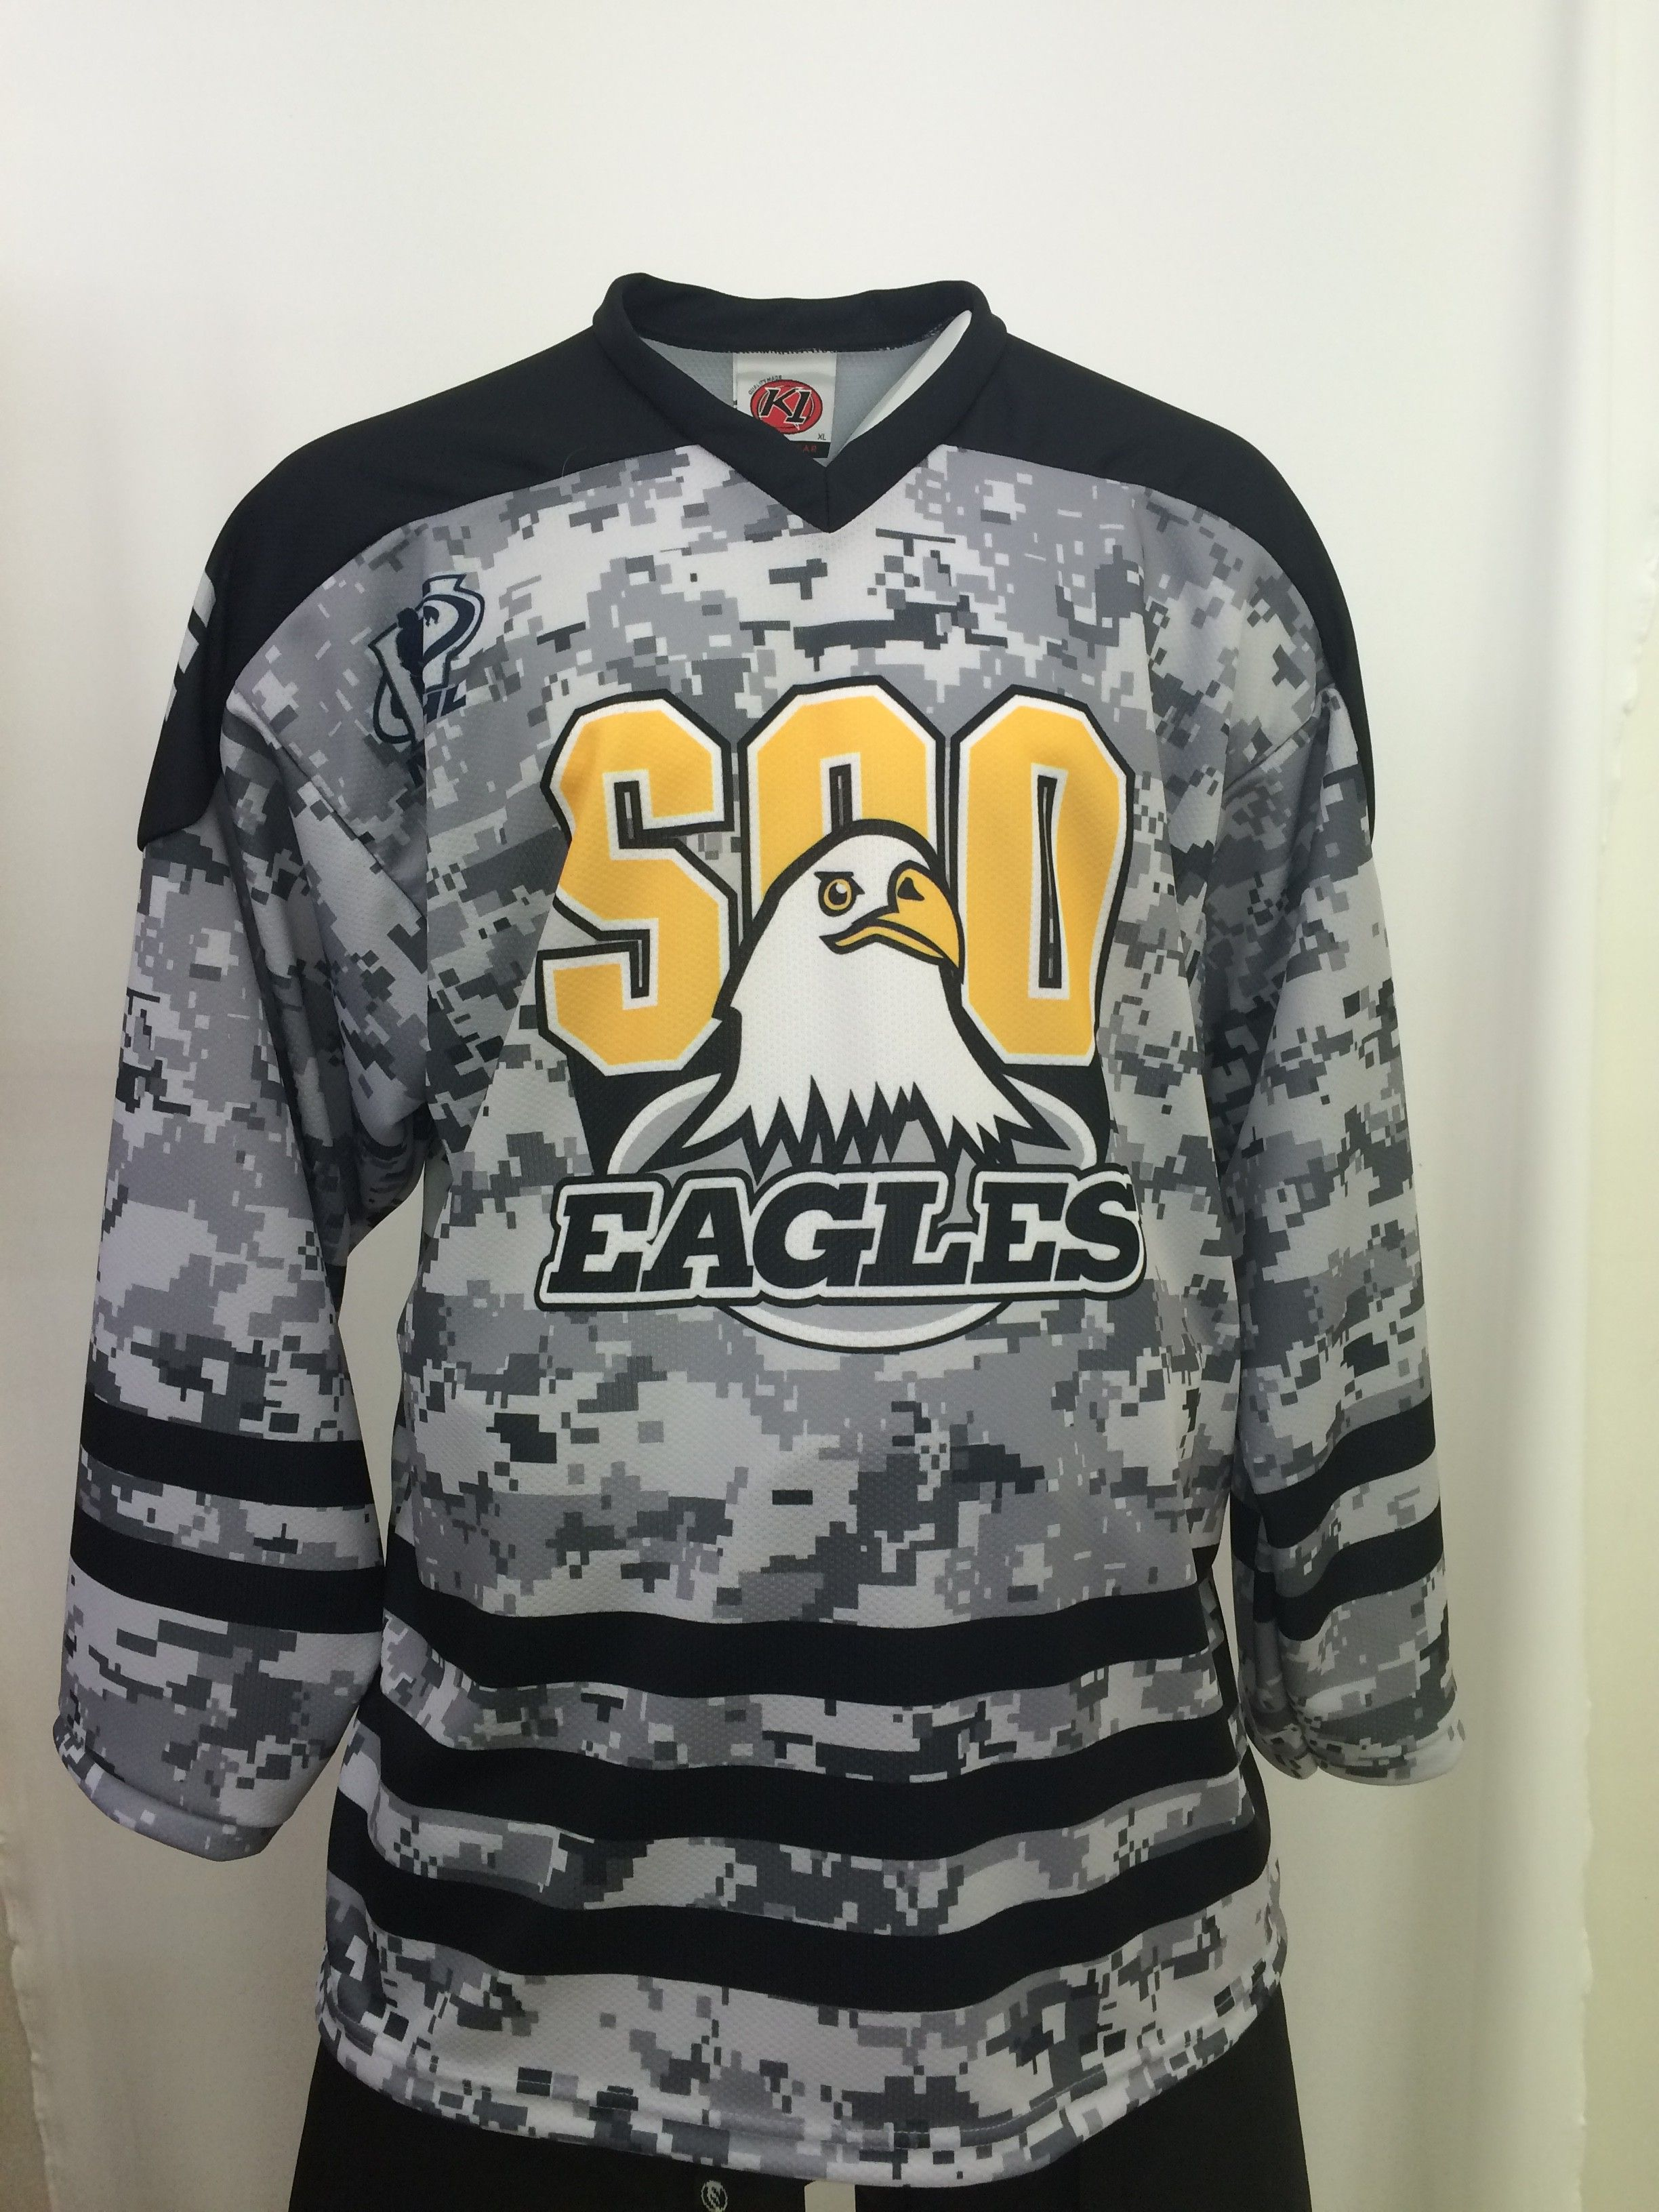 076a8790bb9 Custom Soo Eagles Sublimated Digi-Camo Hockey Jersey. Made in the USA at K1  Sportswear.